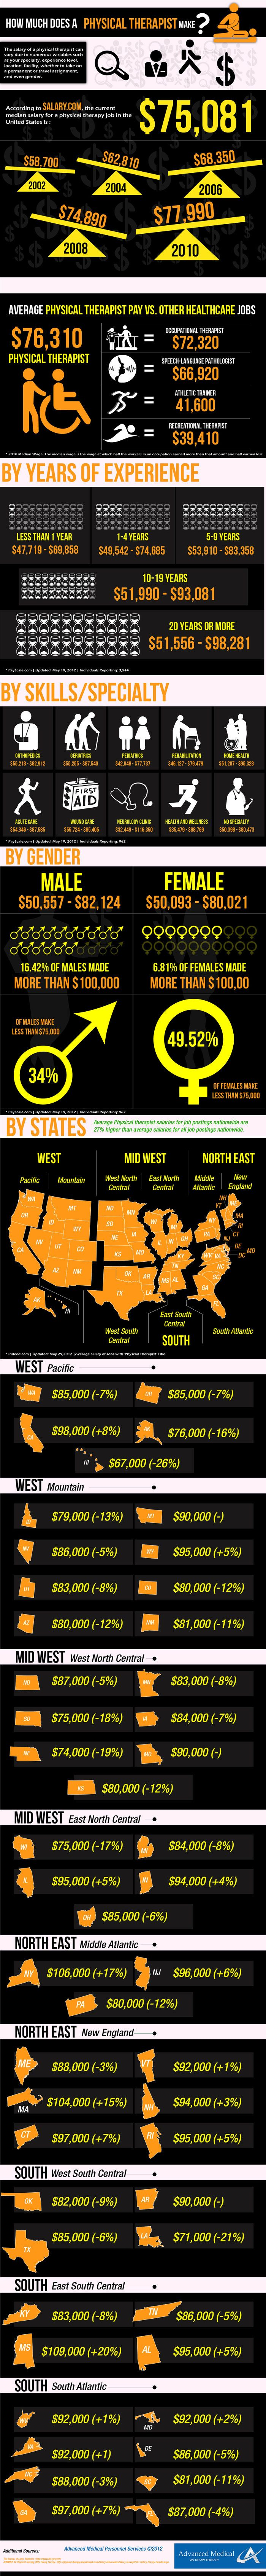 Jobs for impact physical therapy - How Much Does A Physical Therapist Make Infographic